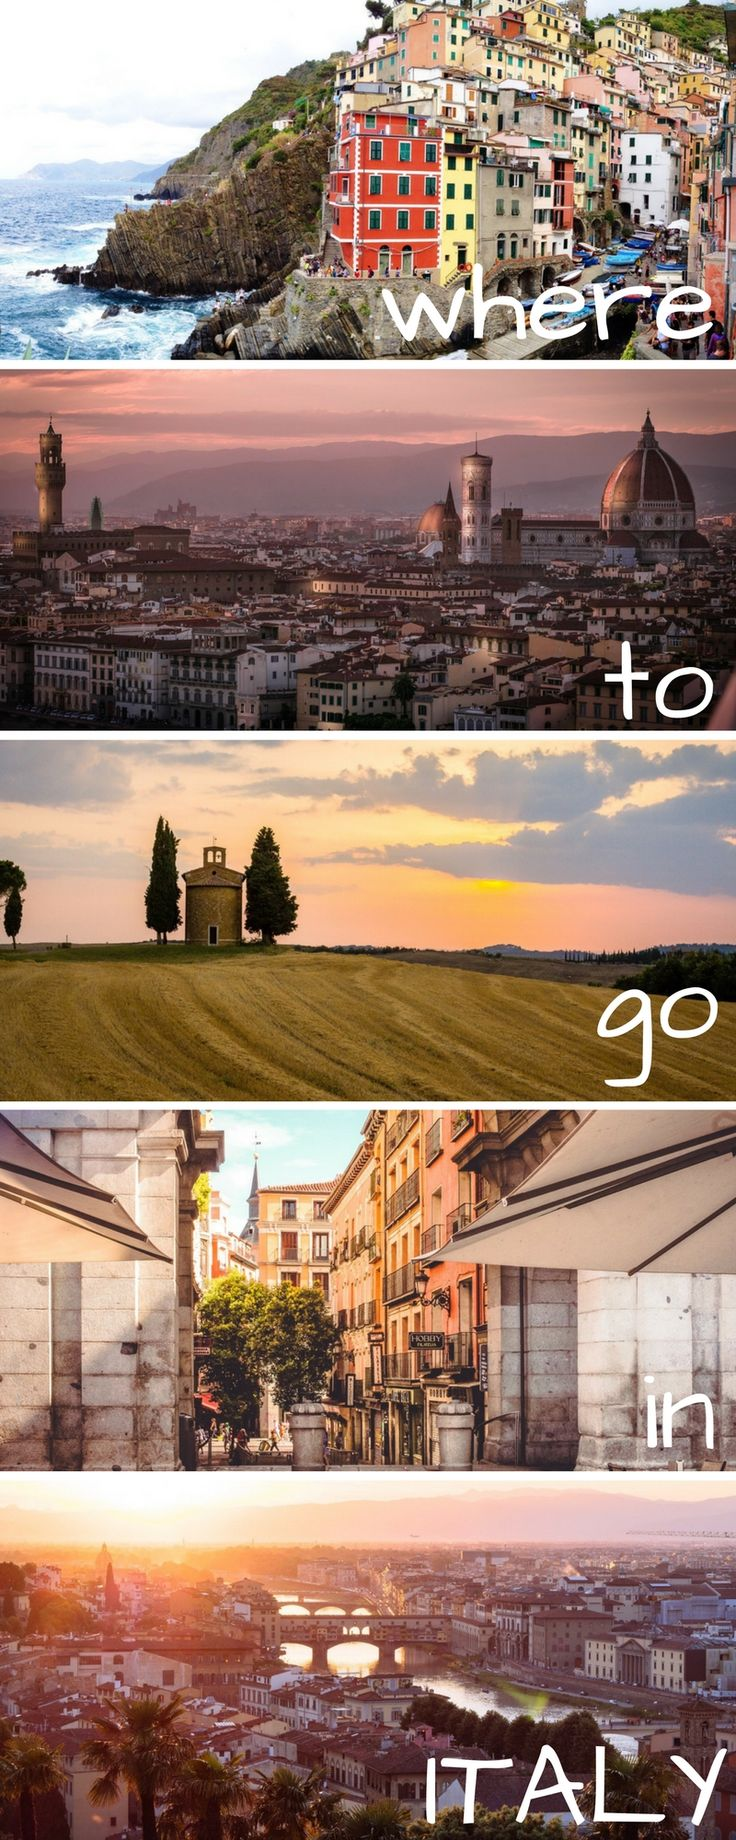 Italy is the perfect country to vacation to. Rome, Florence, Napes, Venice, Cinque Terre, Tuscany, Positano, Amalfi Coast, Lake Como, Siena. All are fabulous places to travel to. Here are tips and suggestions for even a honeymoon in Italy.